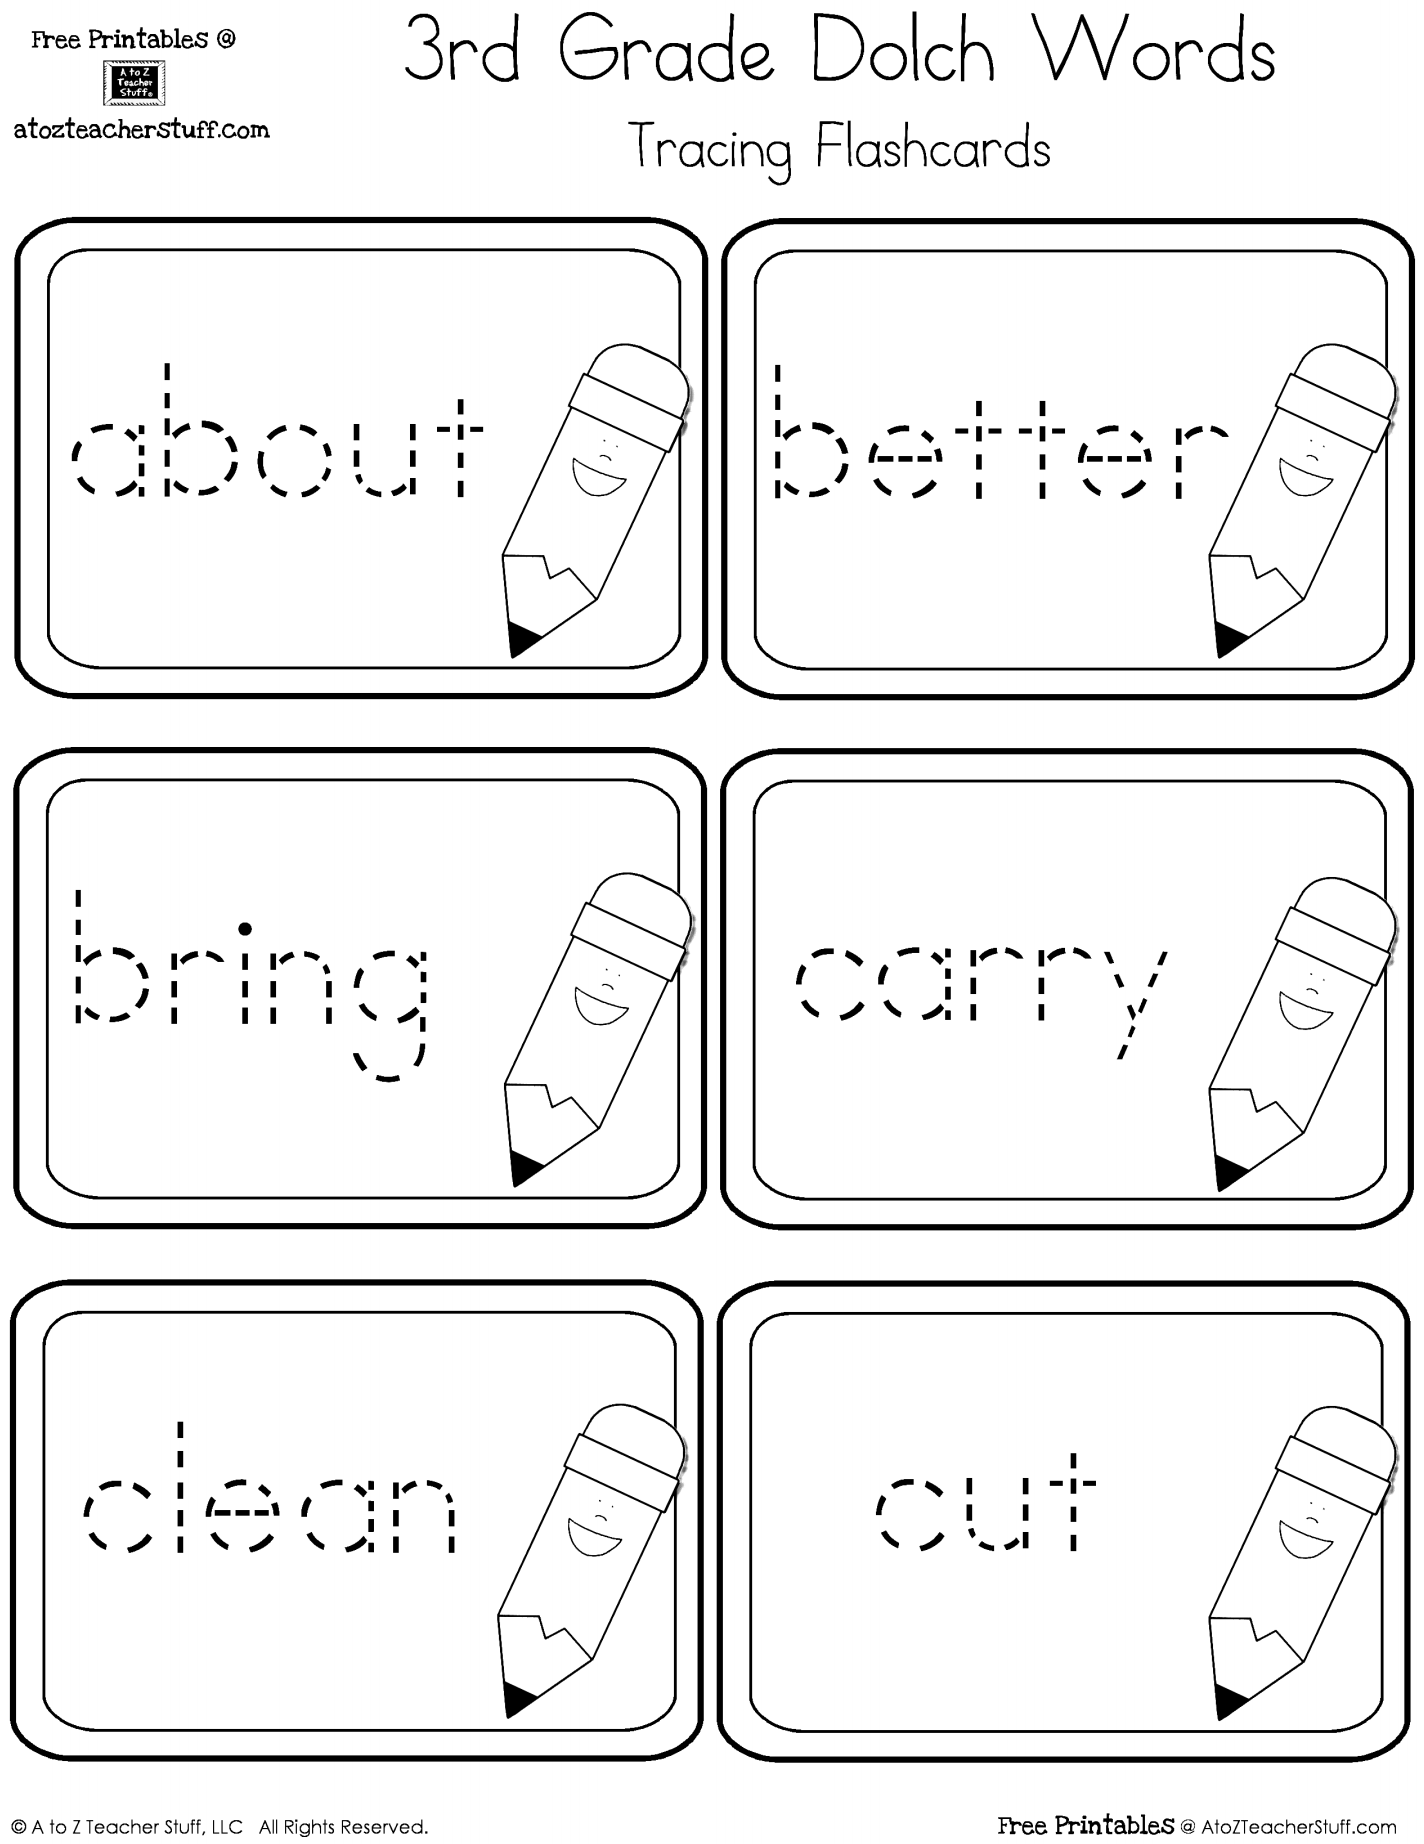 worksheet Site Word Worksheets third grade dolch sight words tracing flashcards a to z teacher 3rd cards free printables